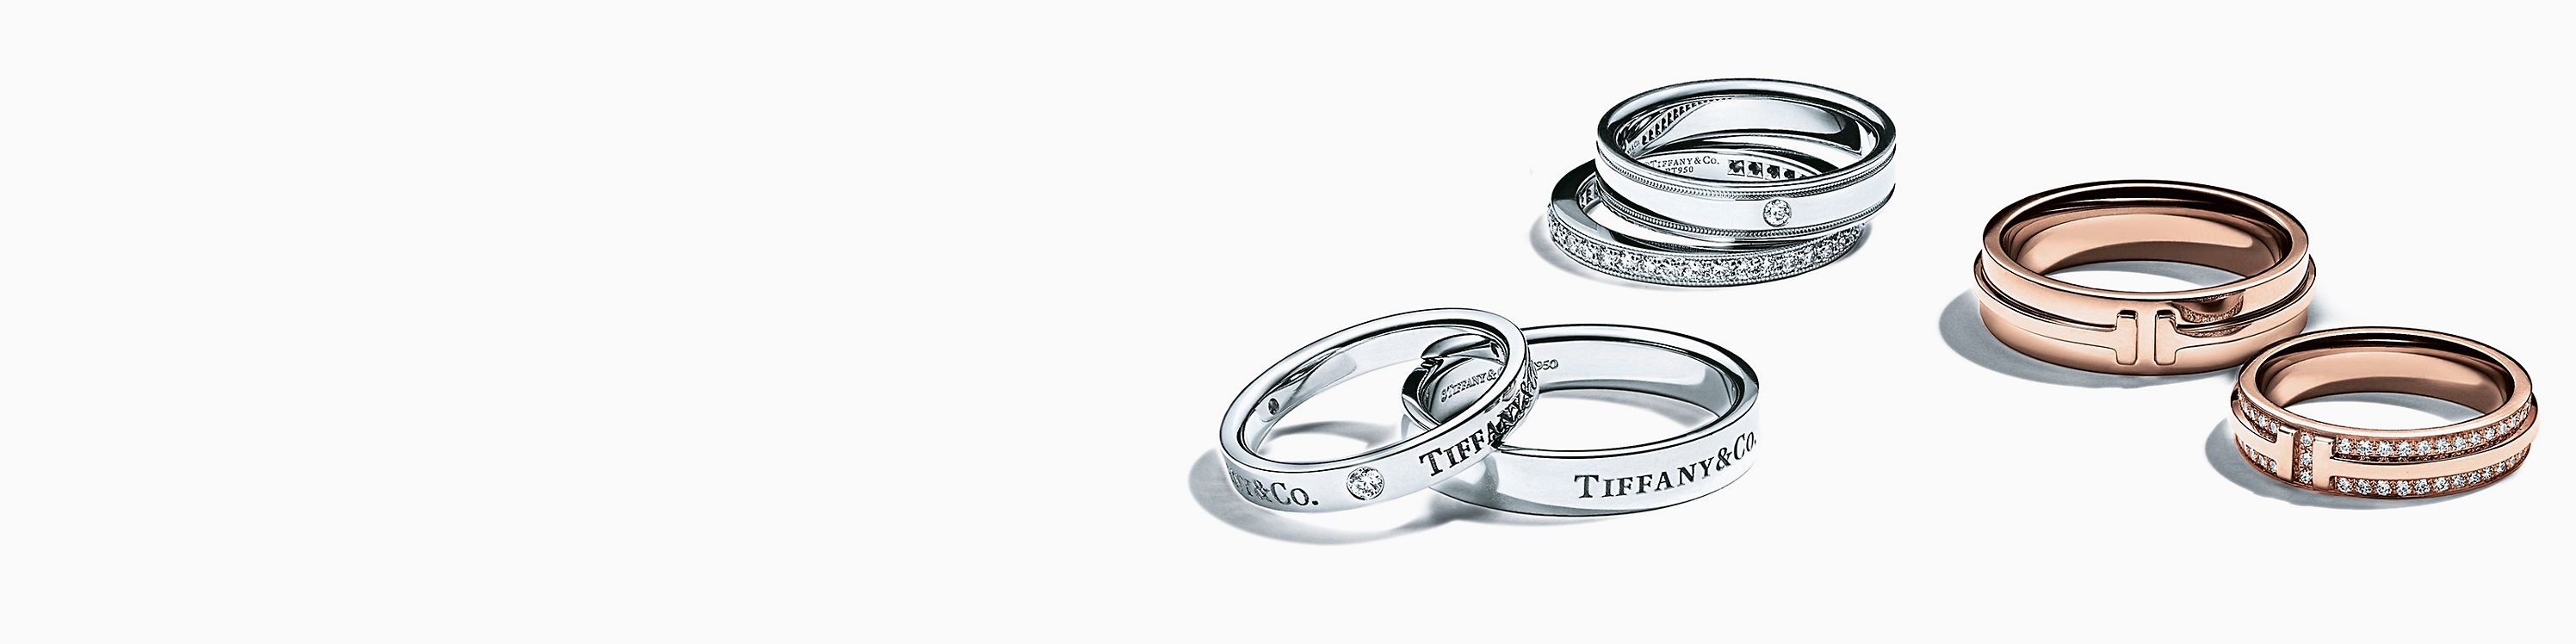 Кольца Tiffany & Co. для пар